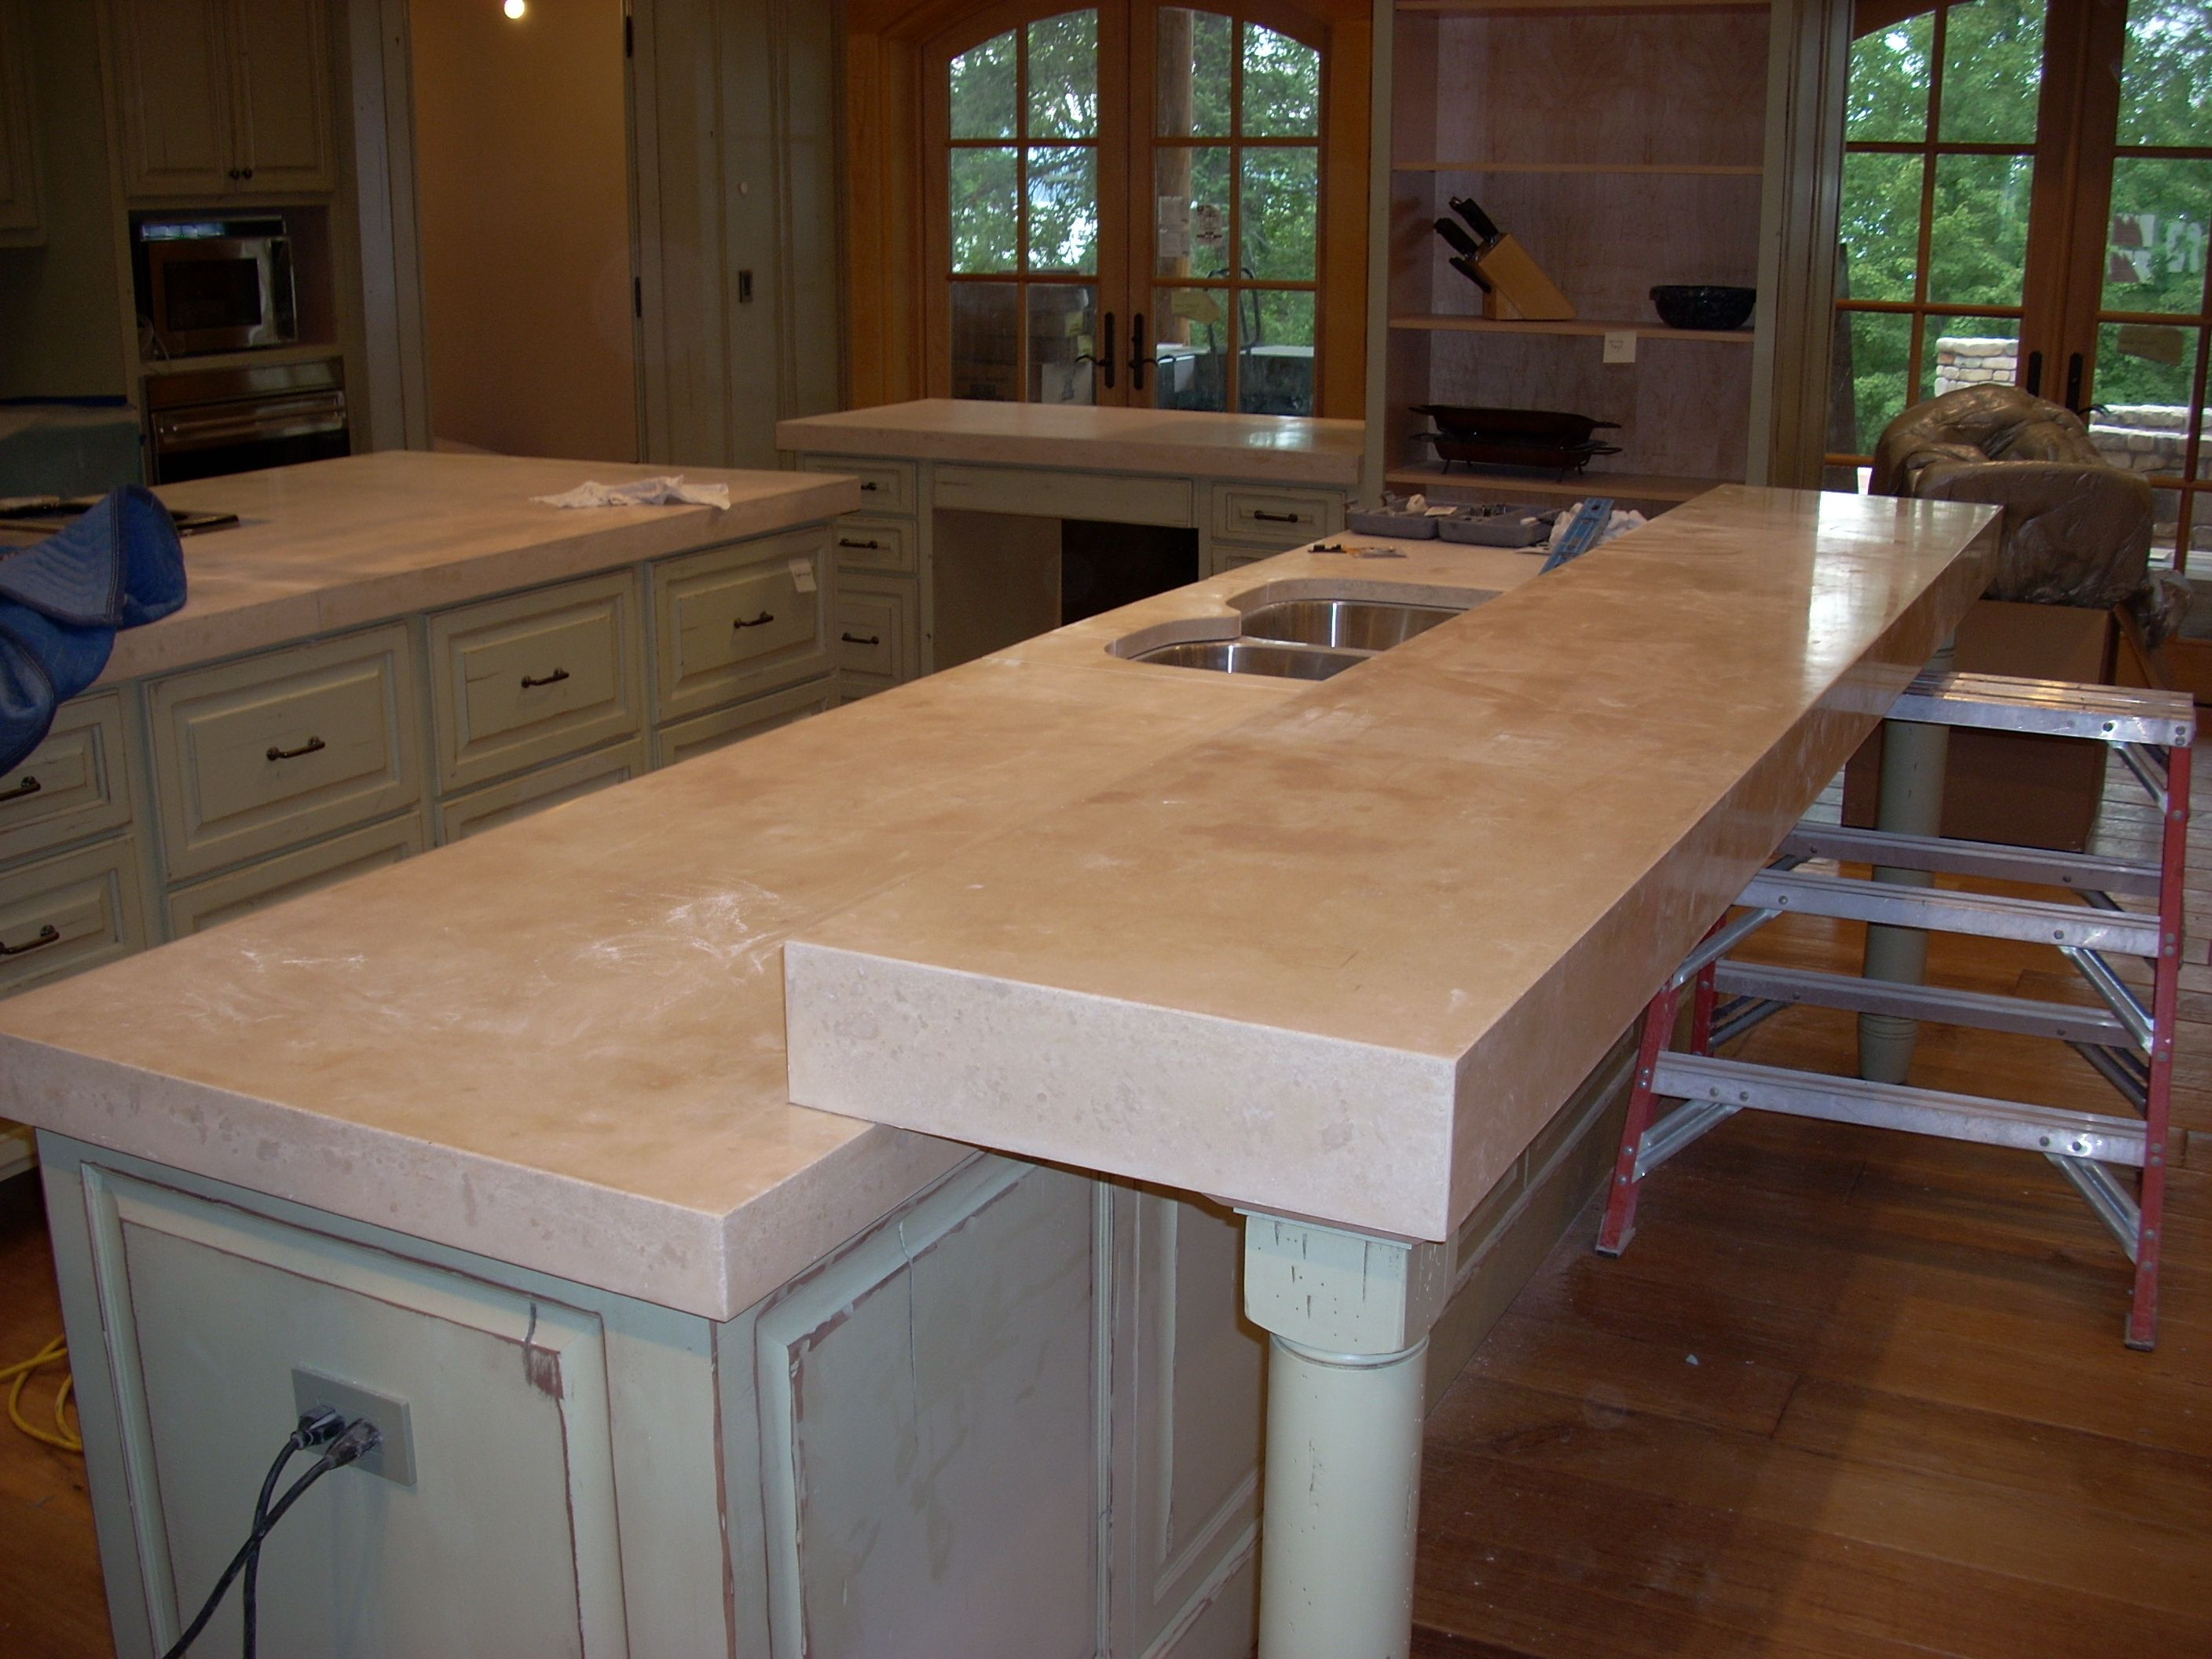 Uncategorized Concrete Kitchen Countertops concrete countertops kitchen or outdoor nw concreteworks inc